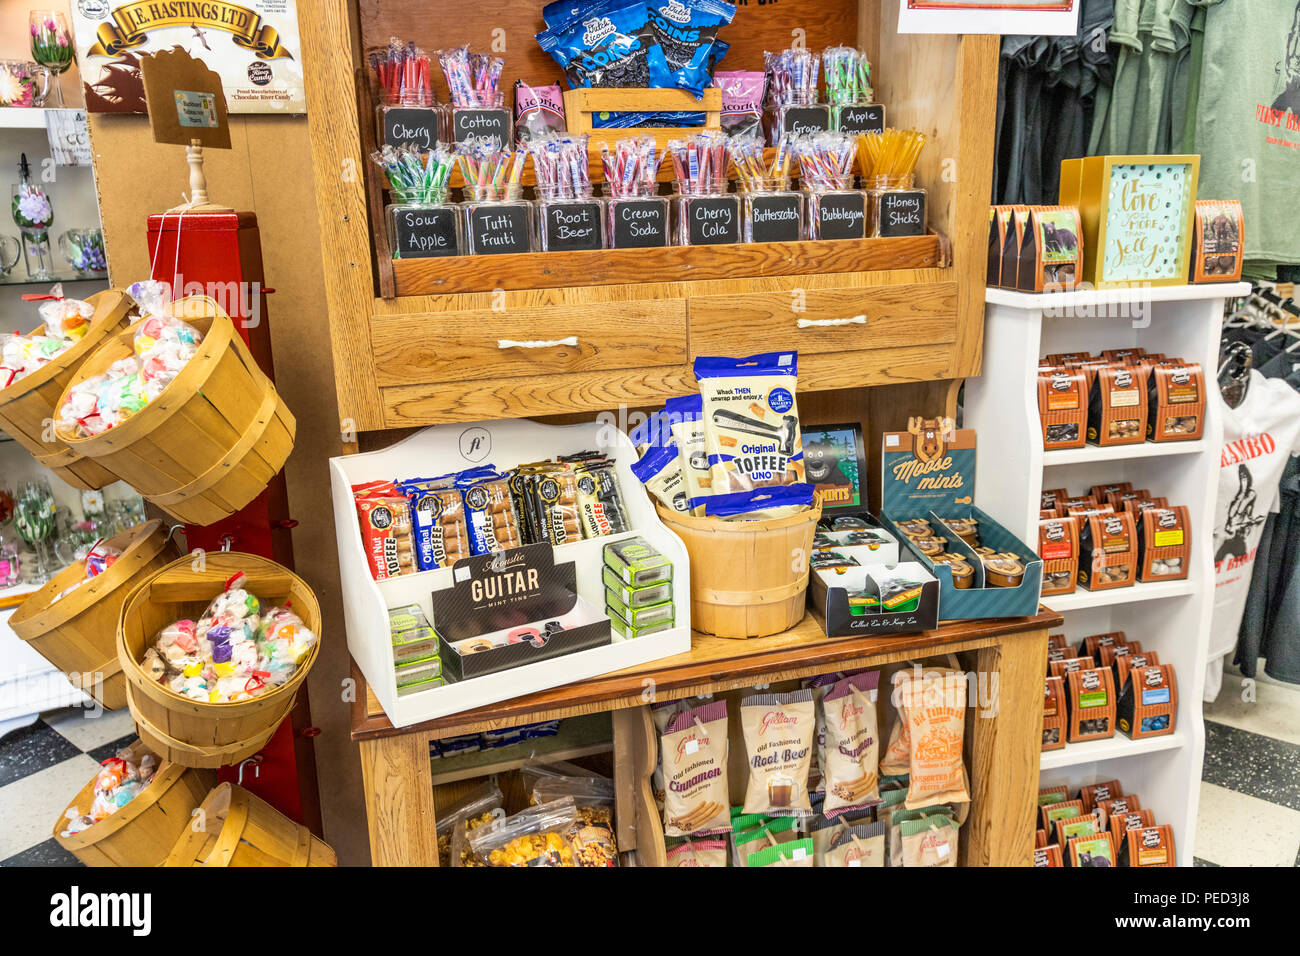 Display of candy sweets in the Artisans Attic and Fudgery Gift Shoppe in the town of Hope, British Columbia, Canada - Stock Image